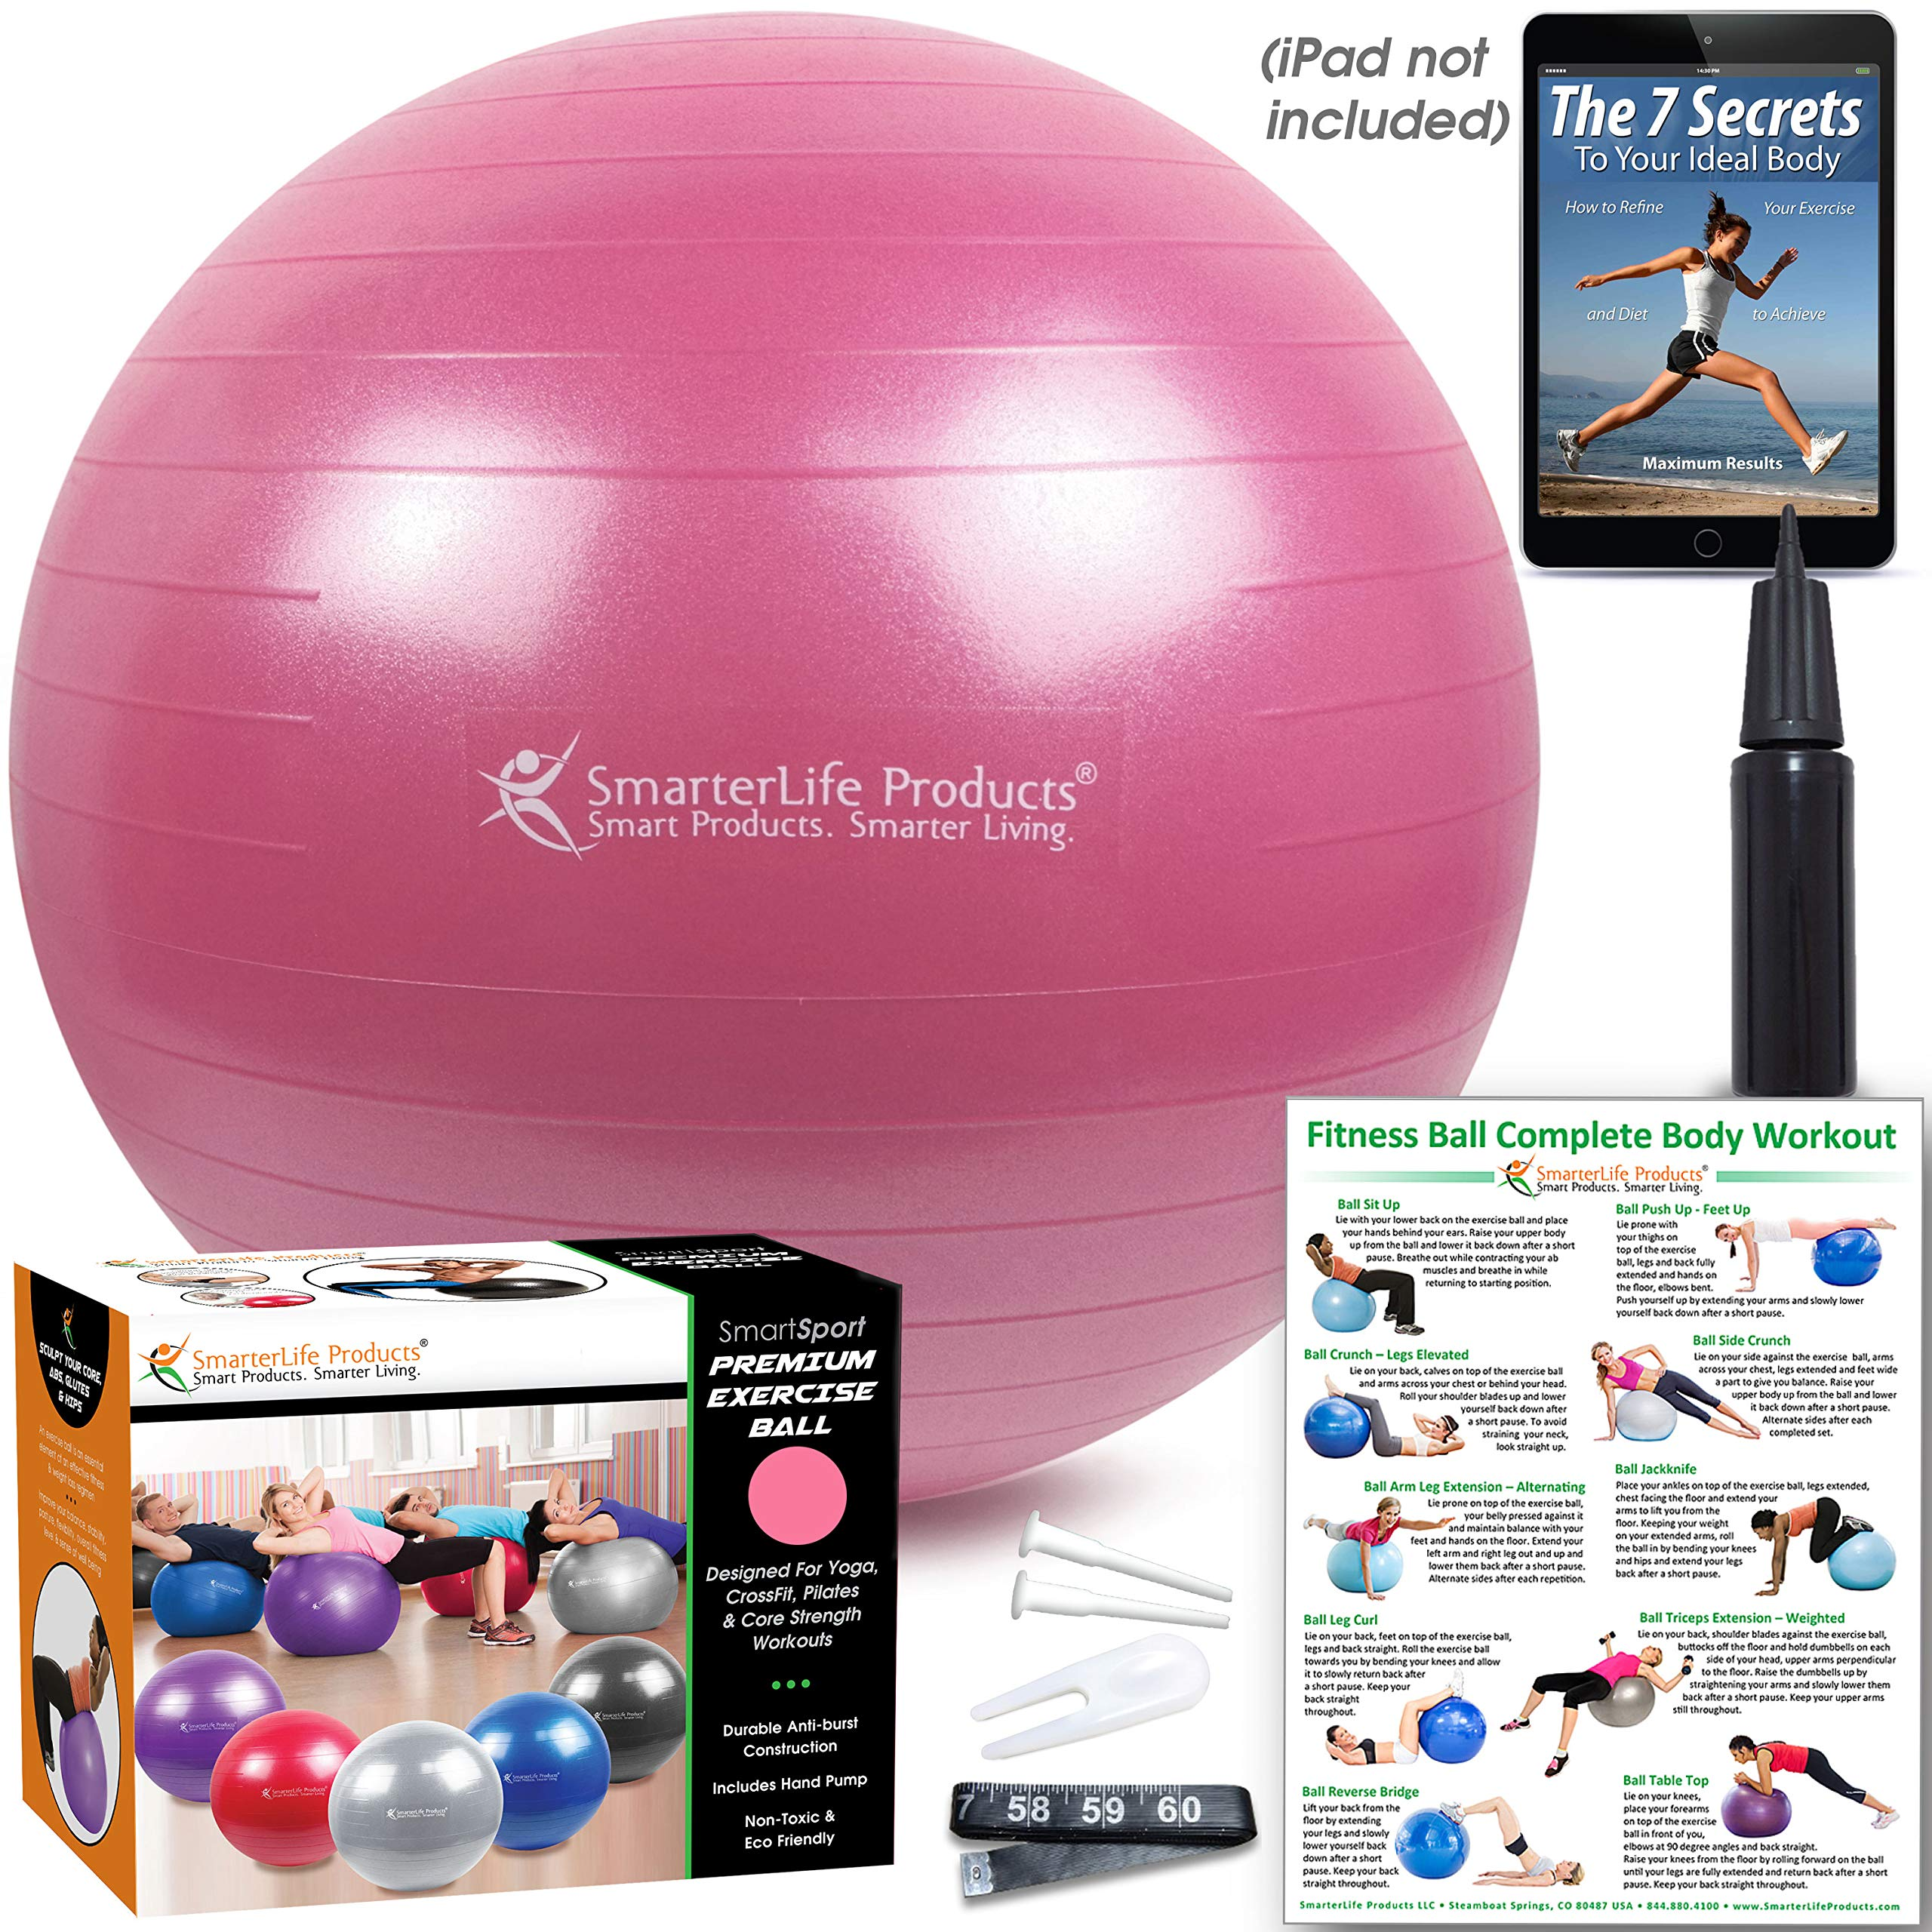 Exercise Ball for Yoga, Balance, Stability from SmarterLife - Fitness, Pilates, Birthing, Therapy, Office Ball Chair, Classroom Flexible Seating - Anti Burst, No Slip, Workout Guide (Pink, 65 cm) by SmarterLife Products (Image #5)